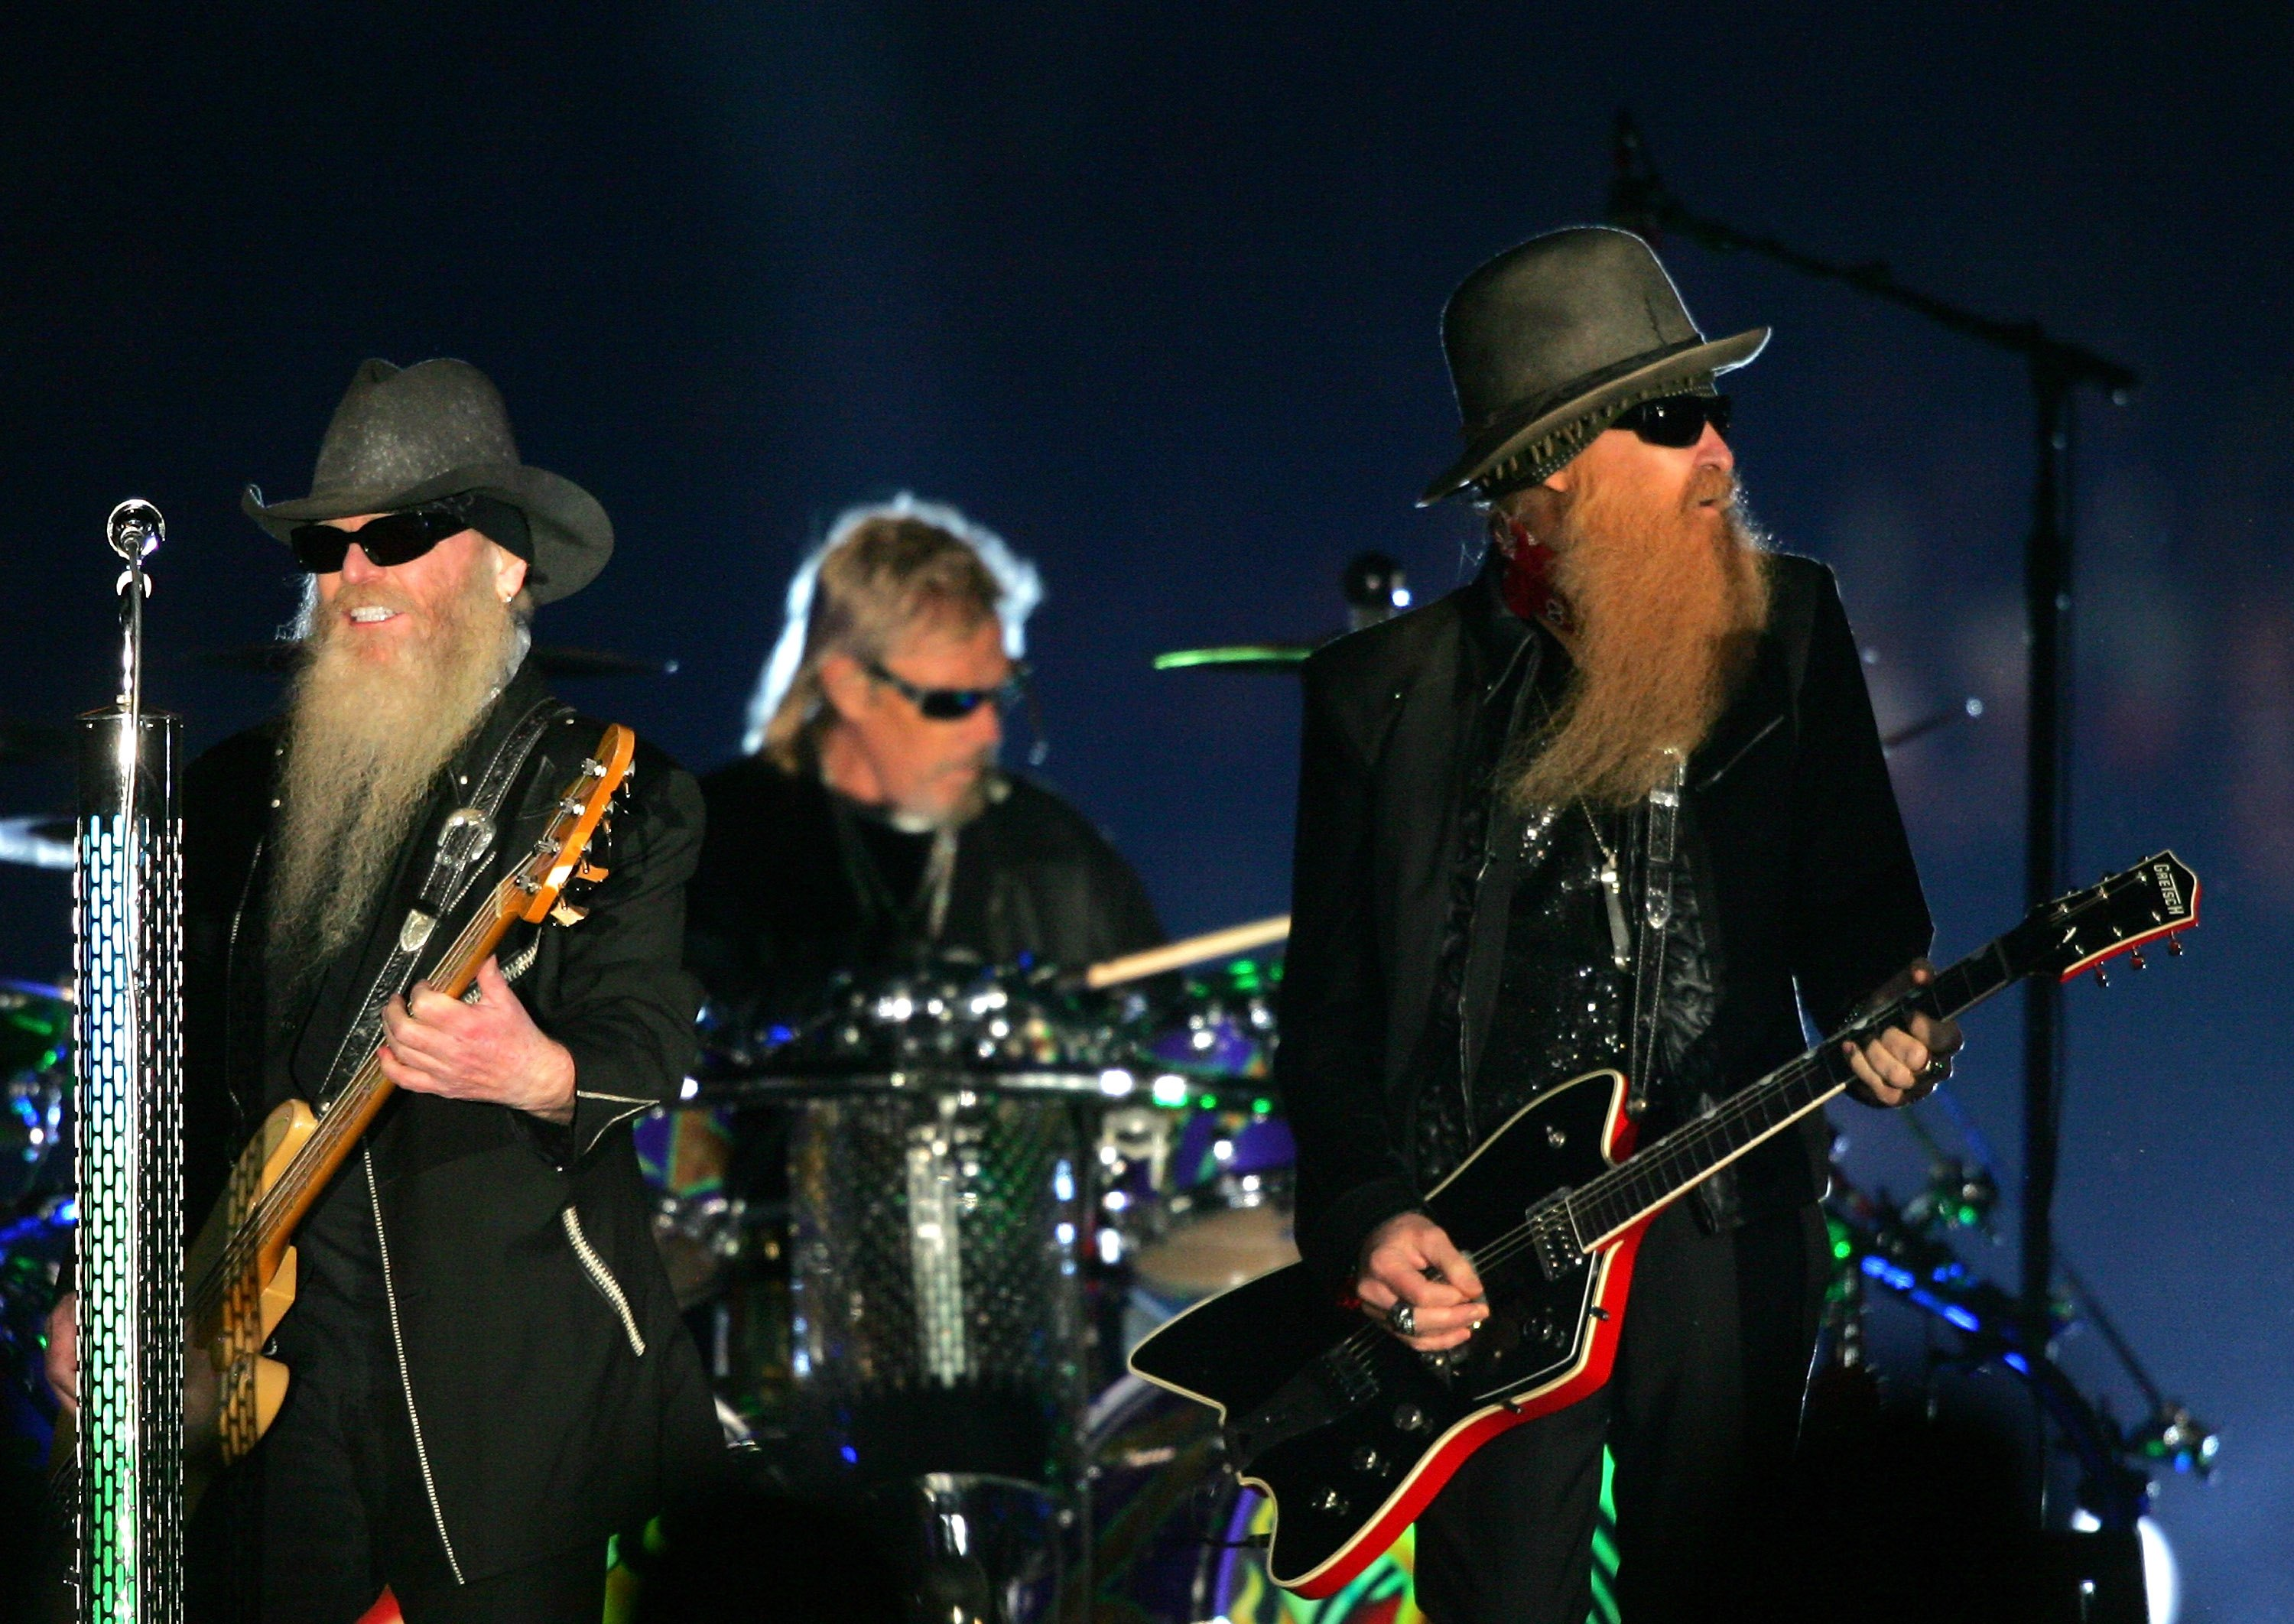 Zz Top Computer Wallpapers, Desktop Backgrounds 1920x1080 Id: 263150